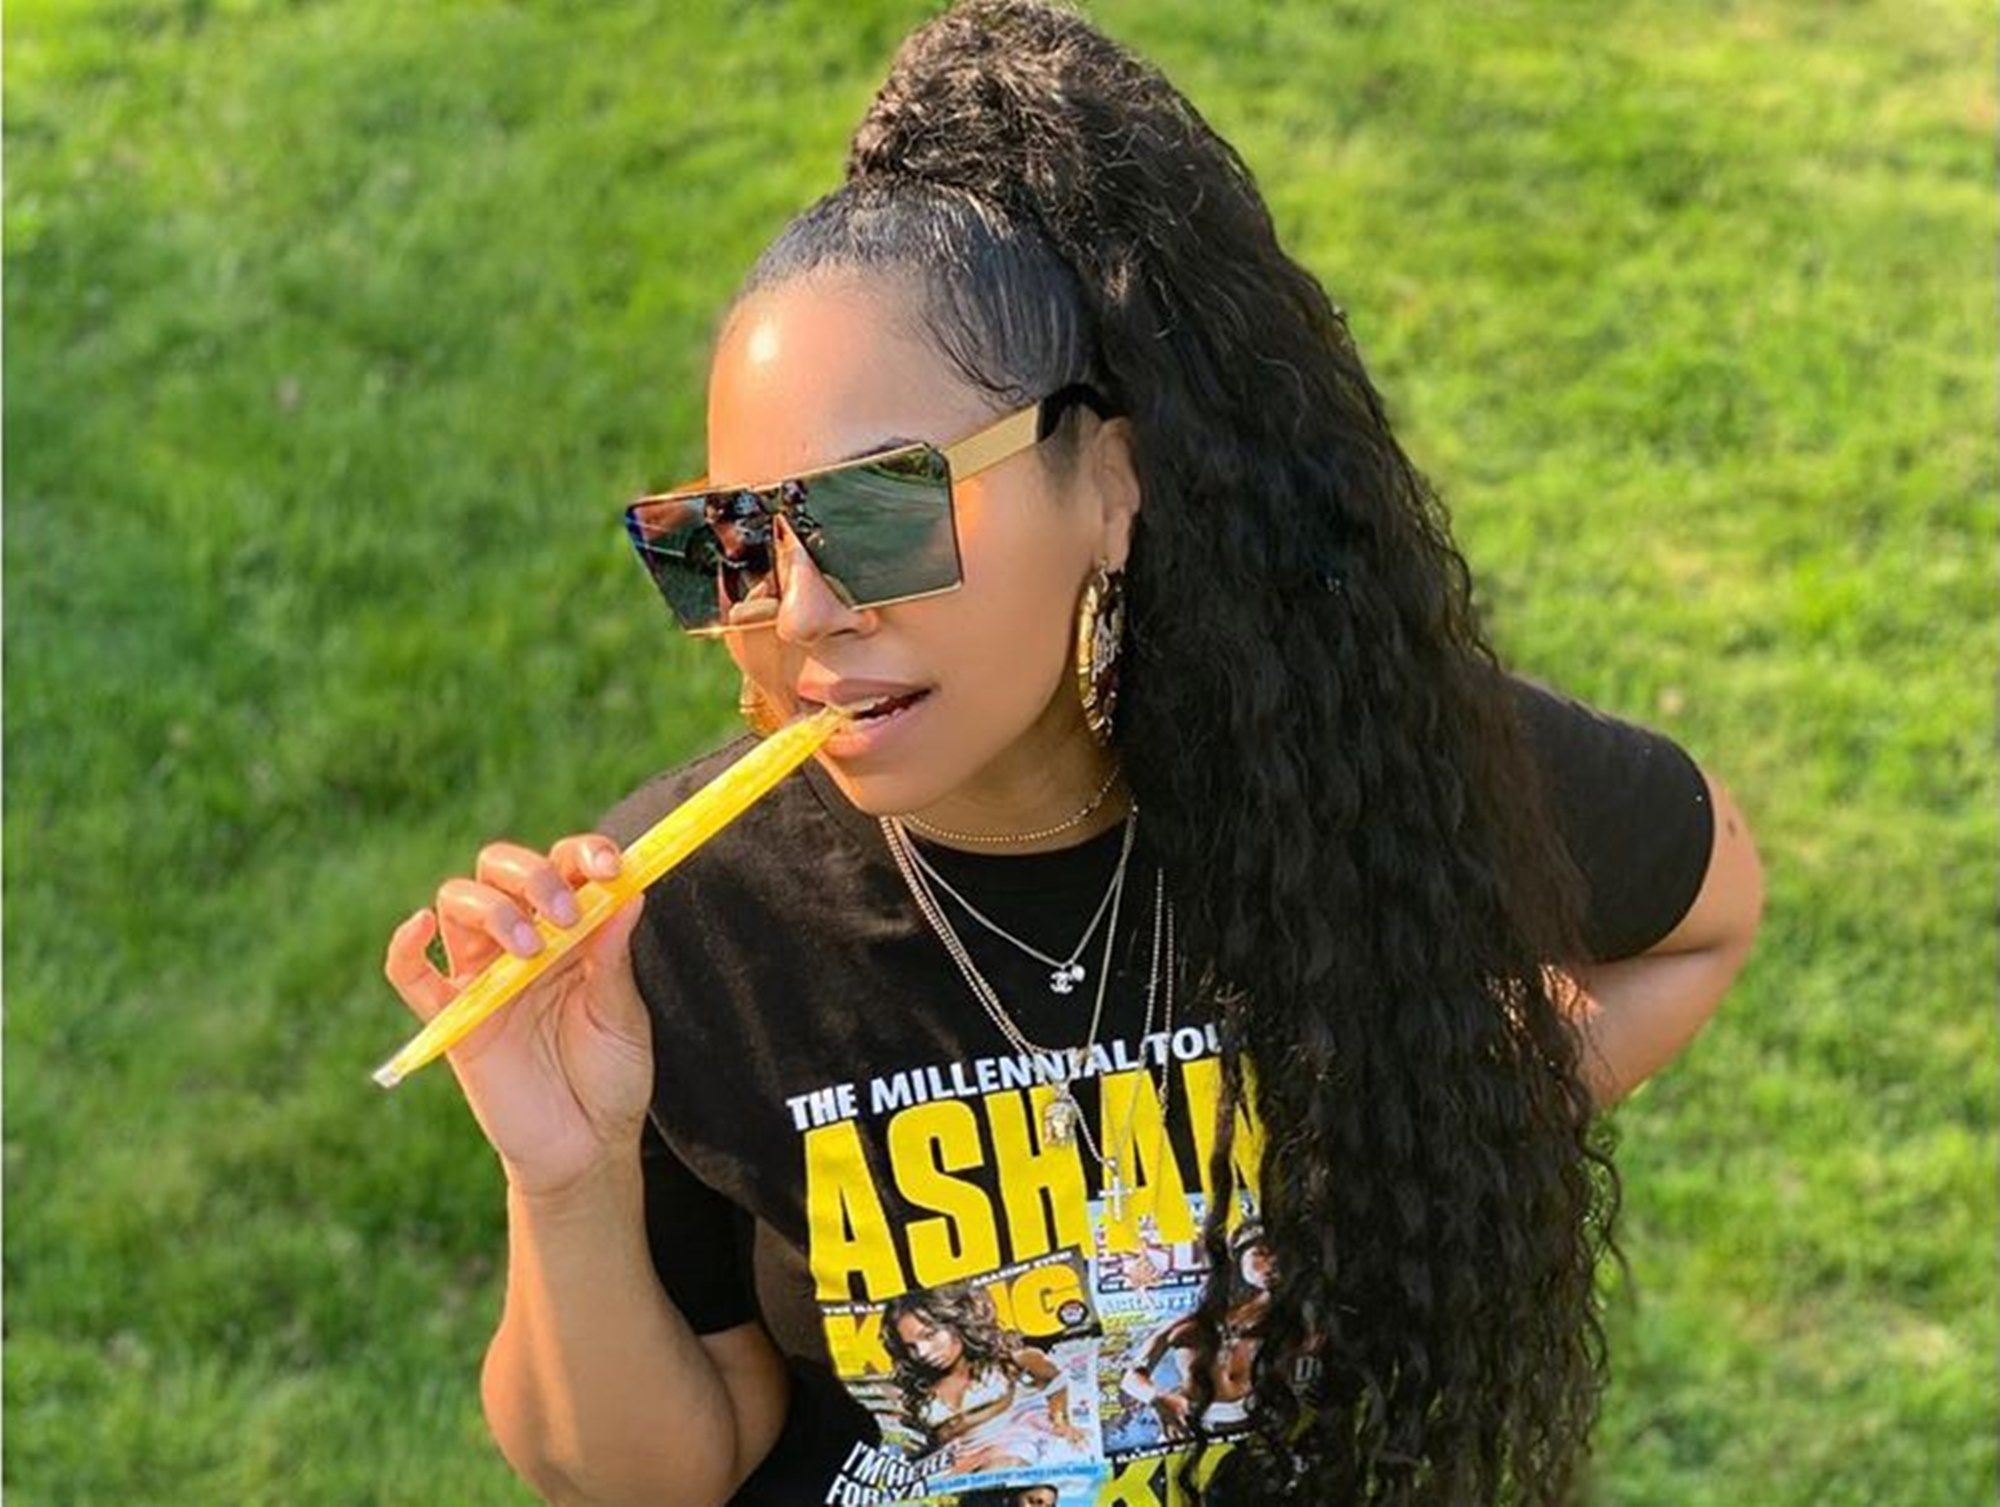 """ashanti-flaunts-her-epic-leg-game-in-new-photo-fans-understand-why-rapper-maino-nearly-lost-his-mind-when-she-rejected-him-and-kept-things-in-the-friend-zone"""